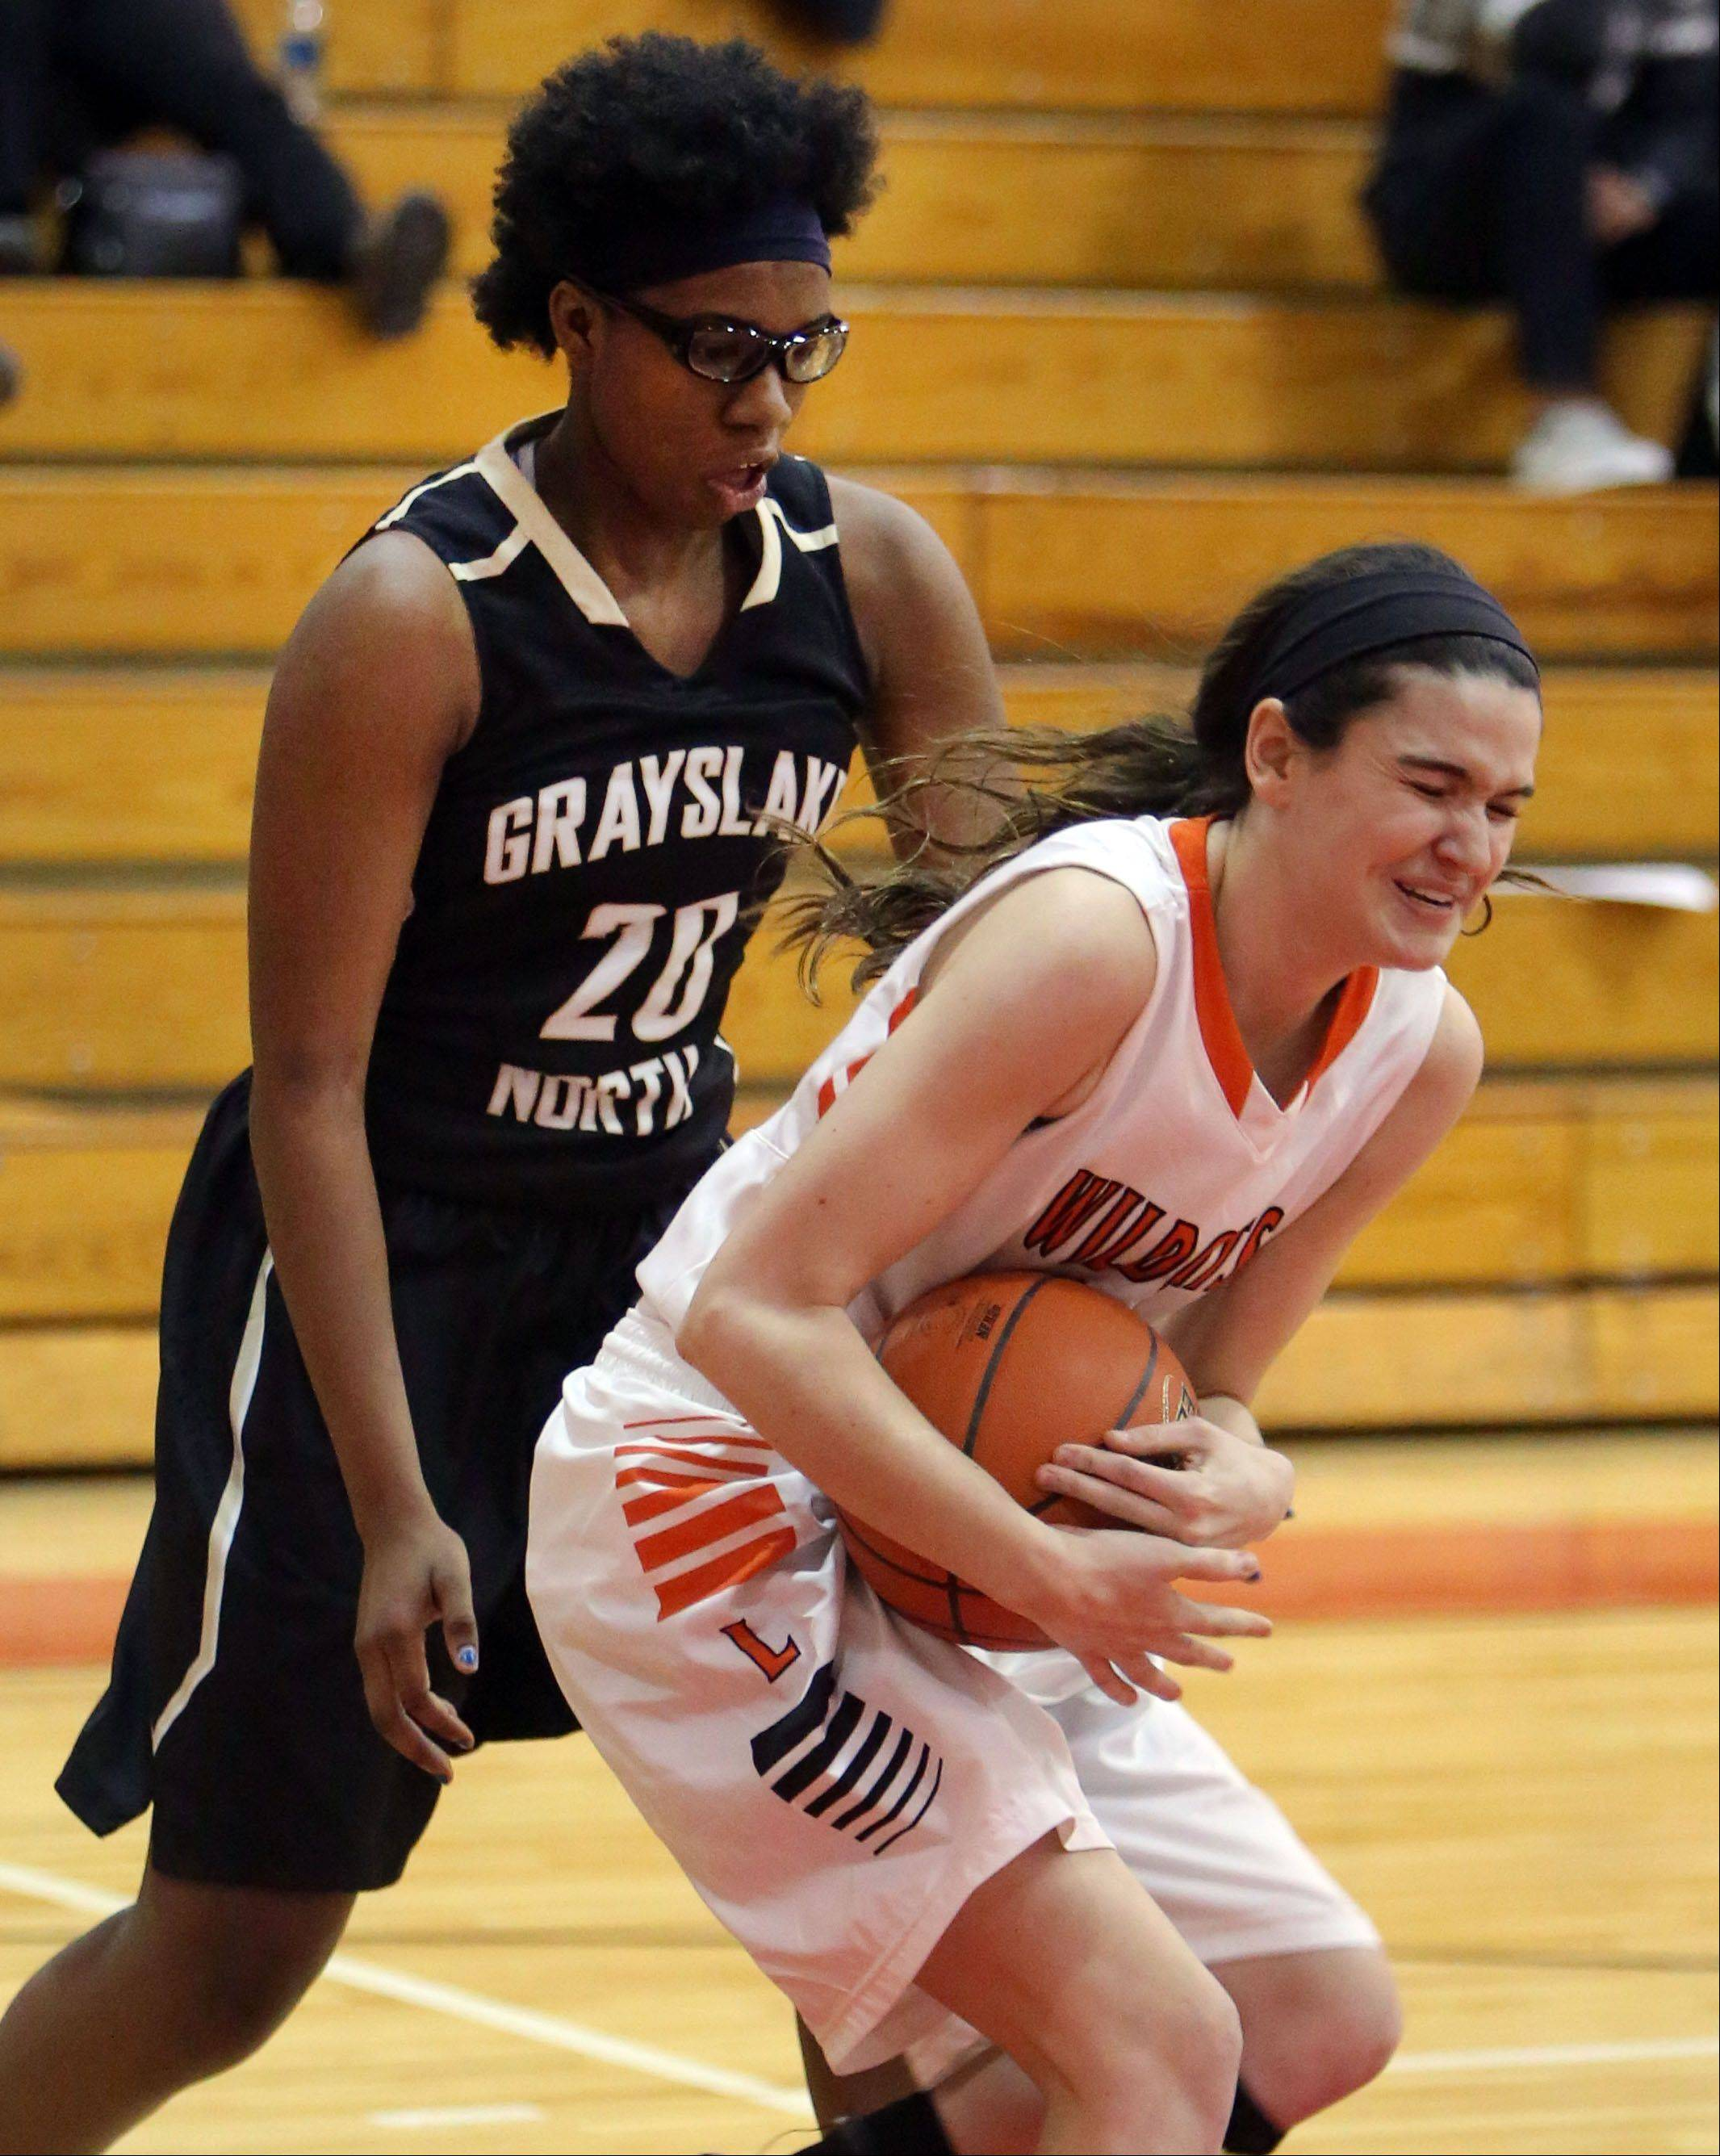 Grayslake North's Brittany Thibeaux, left, defends against Libertyville's Erin Dunleavy during their game Thursday at Mundelein High School.